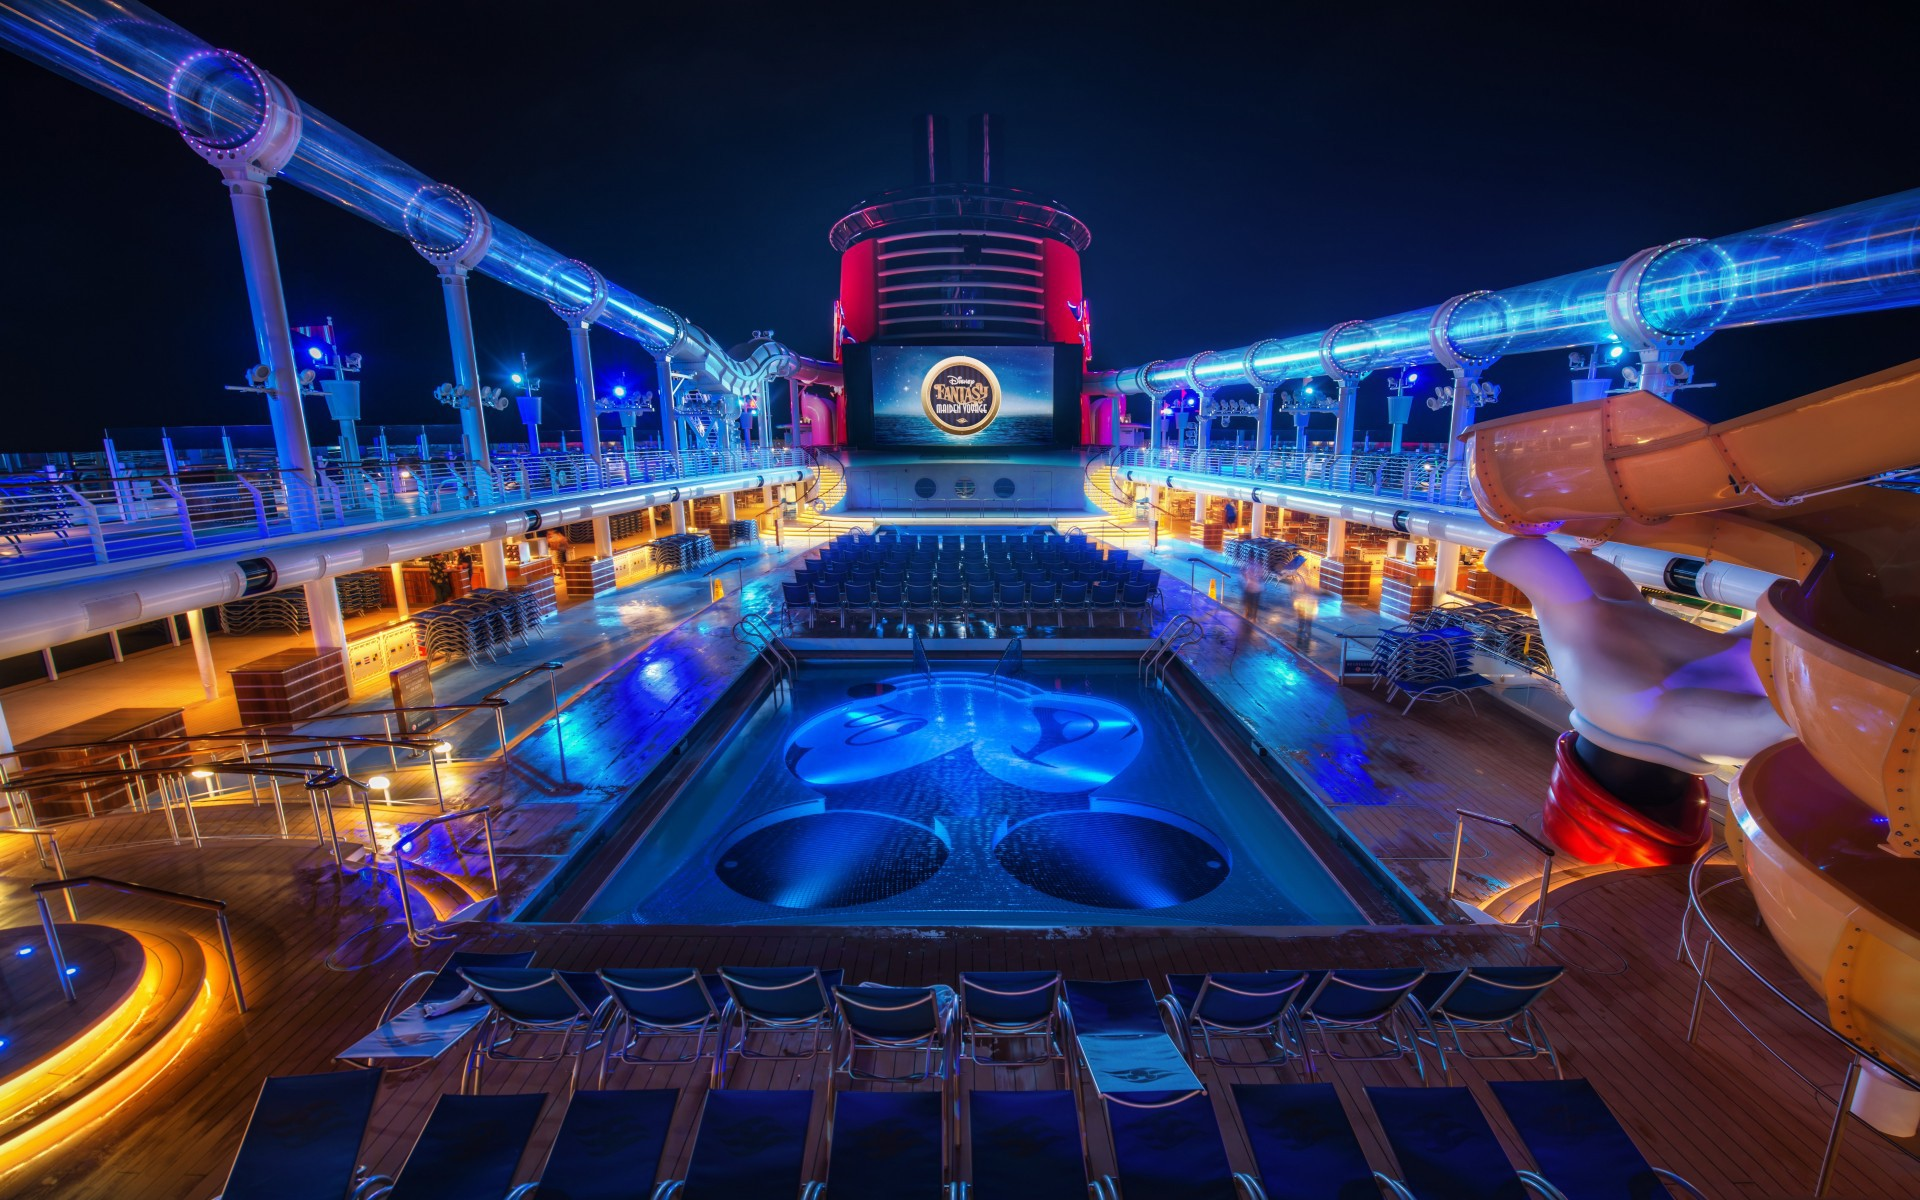 Disney cruise ship hd wallpaper background   Fresh HD Wallpapers 1920x1200